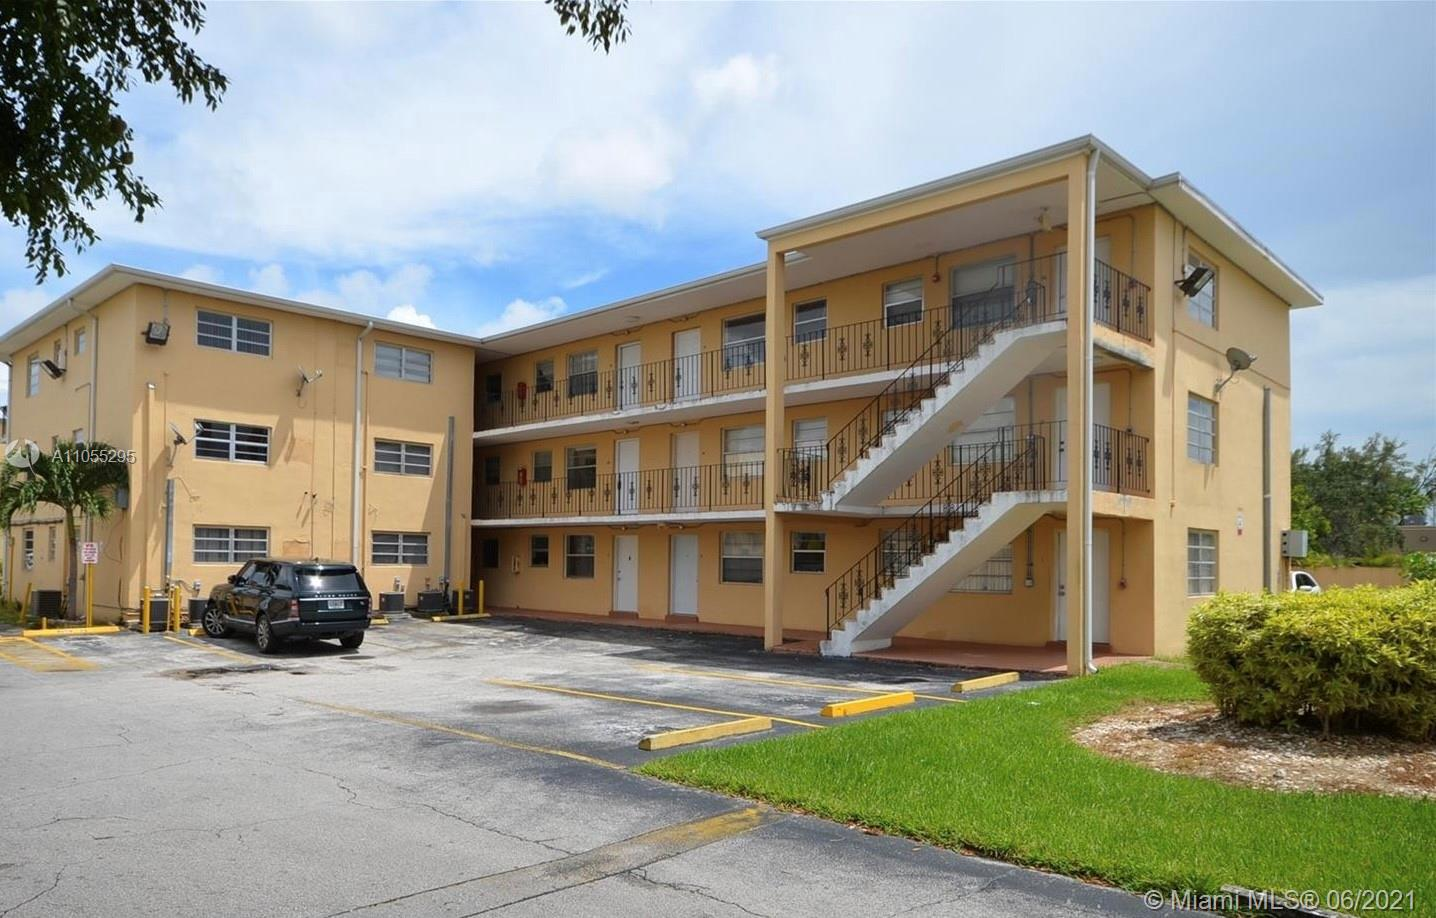 3855 SW 79th Ave #20 For Sale A11055295, FL